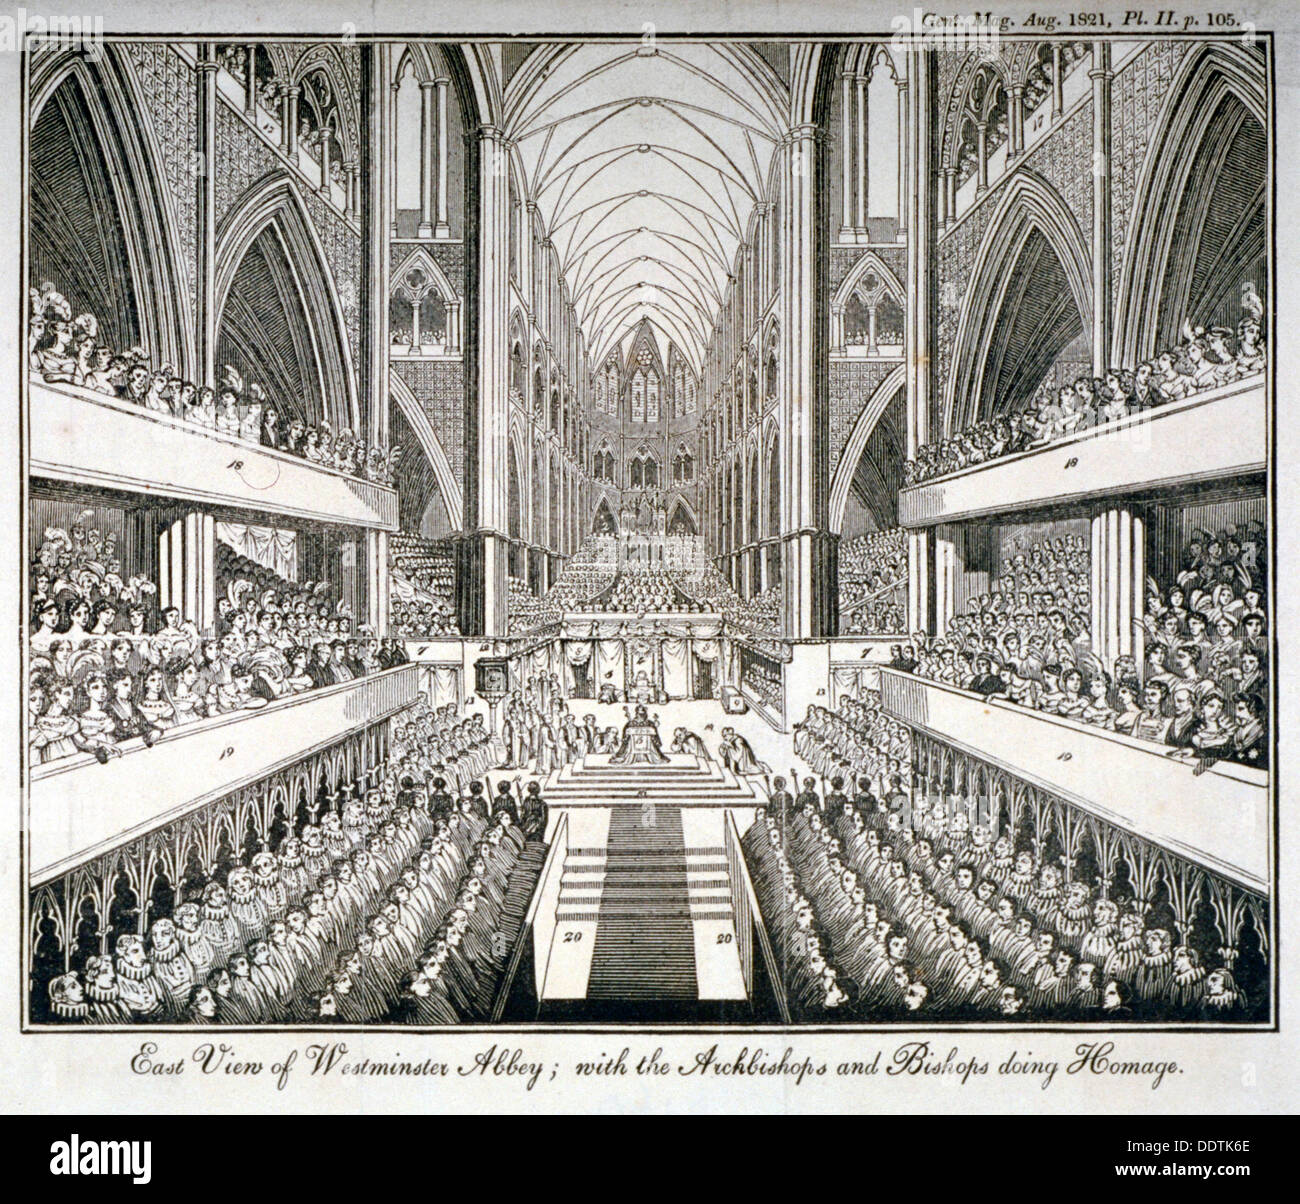 The coronation of George IV in Westminster Abbey, London, 1821. Artist: Anon - Stock Image